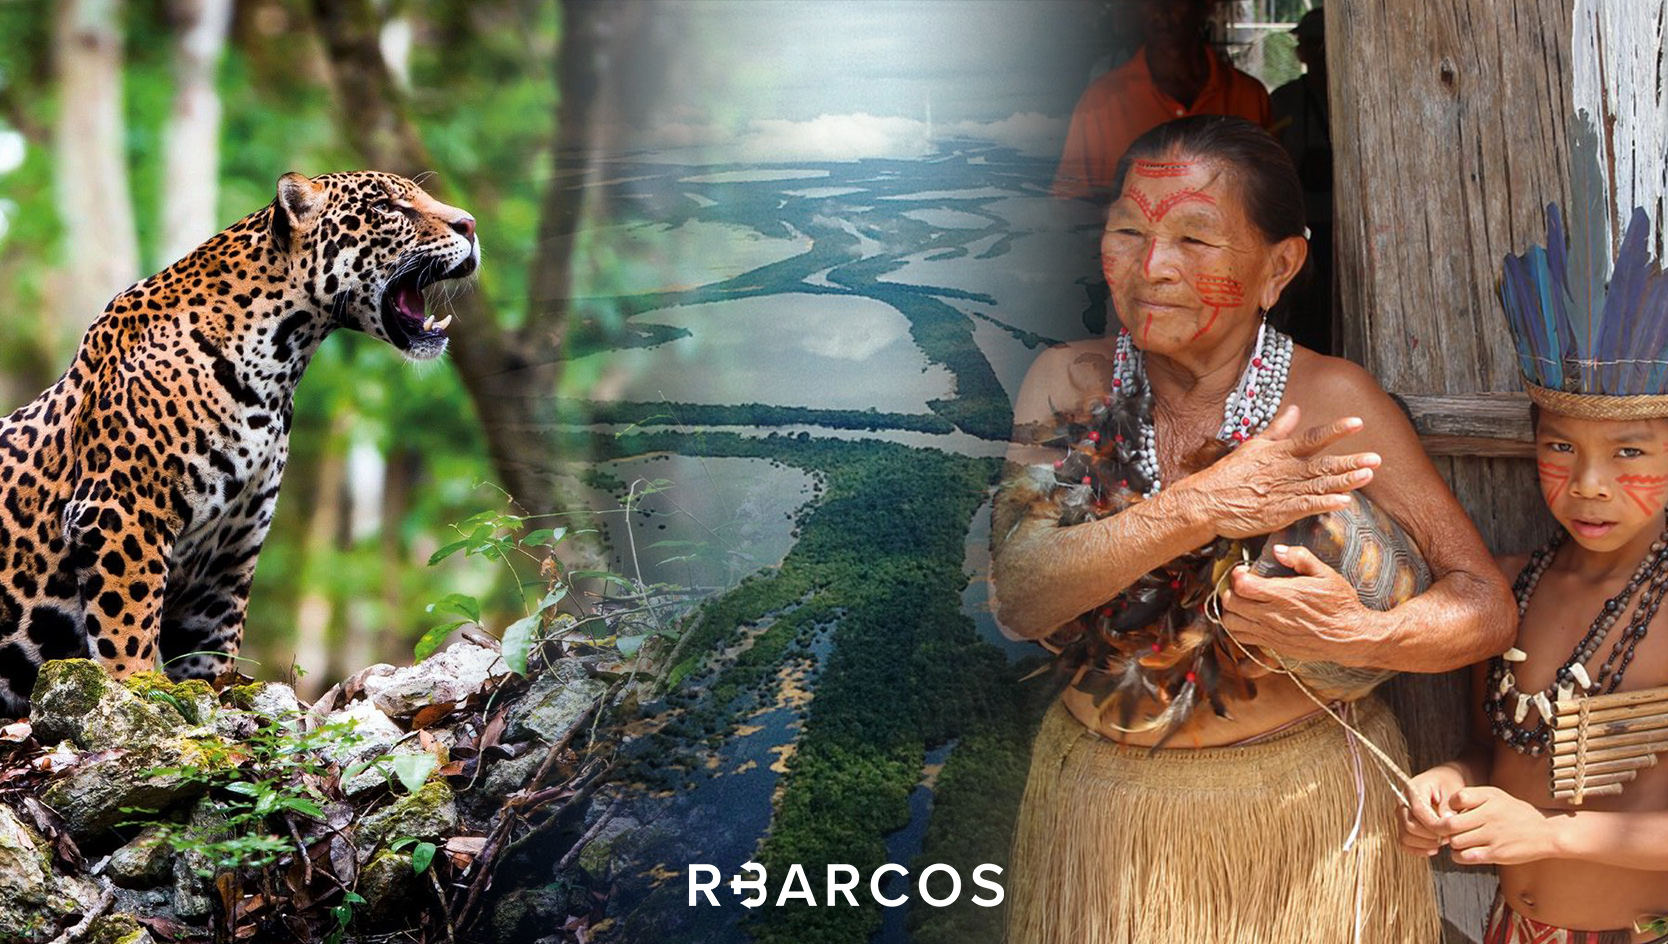 Amazonas is a tropical paradise that offers a range of possibilities for all sailors interested in knowing this magnificent destination. To know the culture and the natural beauty of a place as grand as the Amazon, is to live unique experiences.